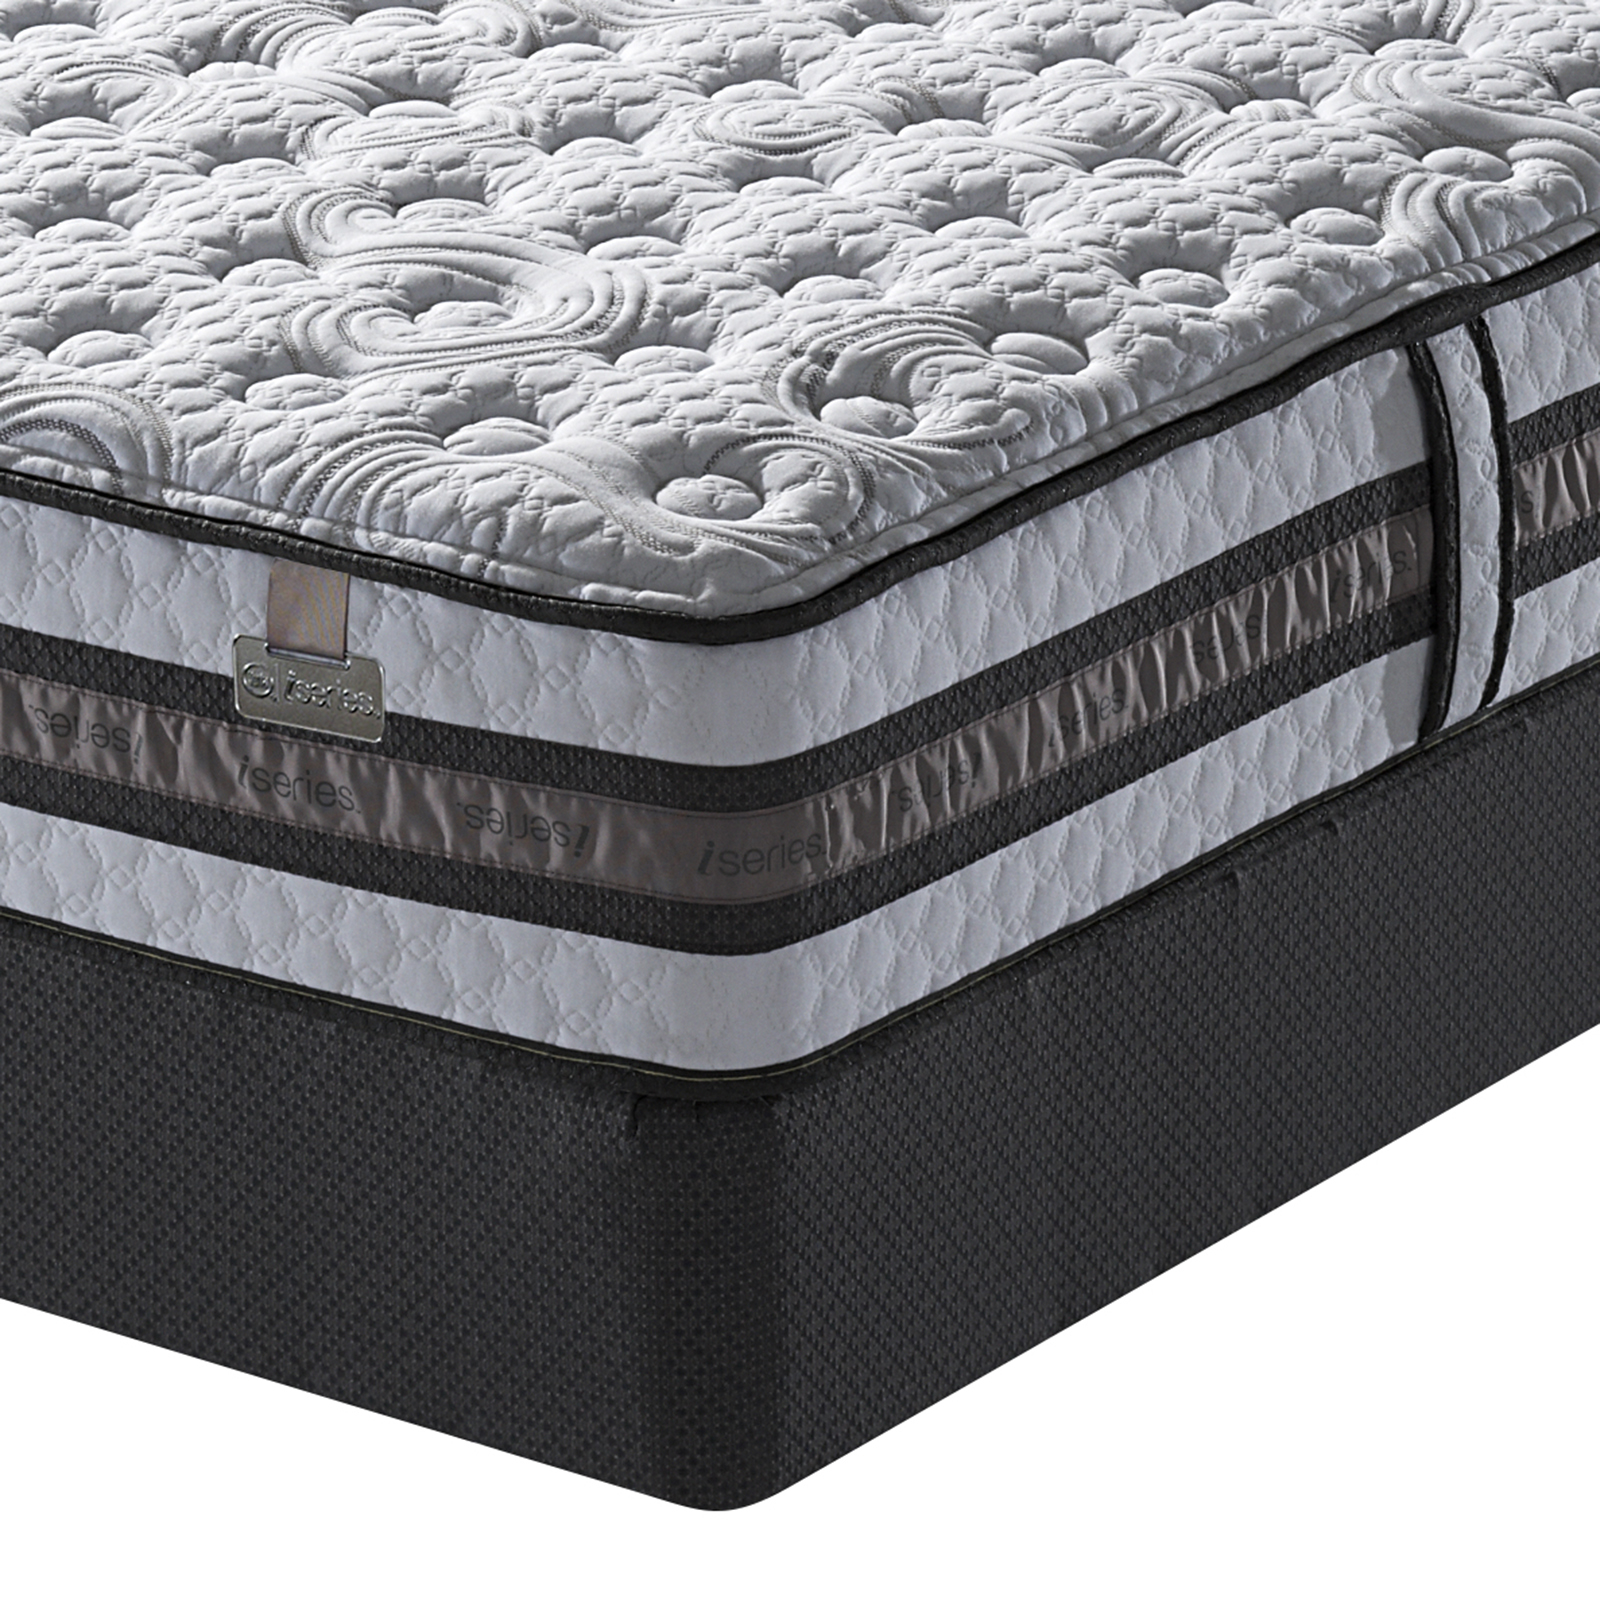 Baby Mattress Kmart Iseries Queen Vantage Firm Mattresssears